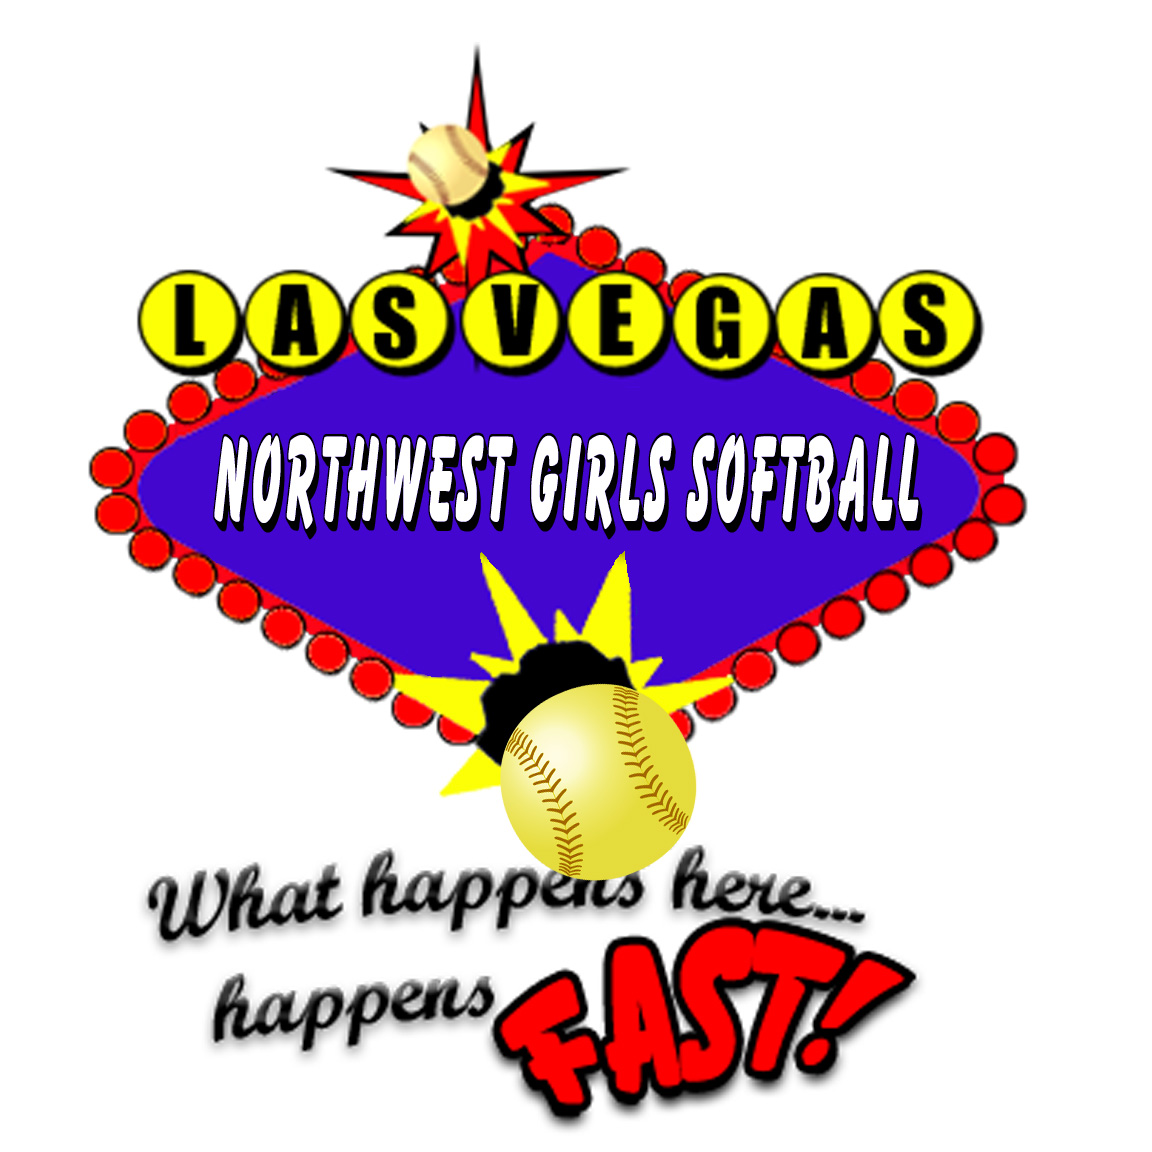 Northwest Girls Softball - Las Vegas, NV